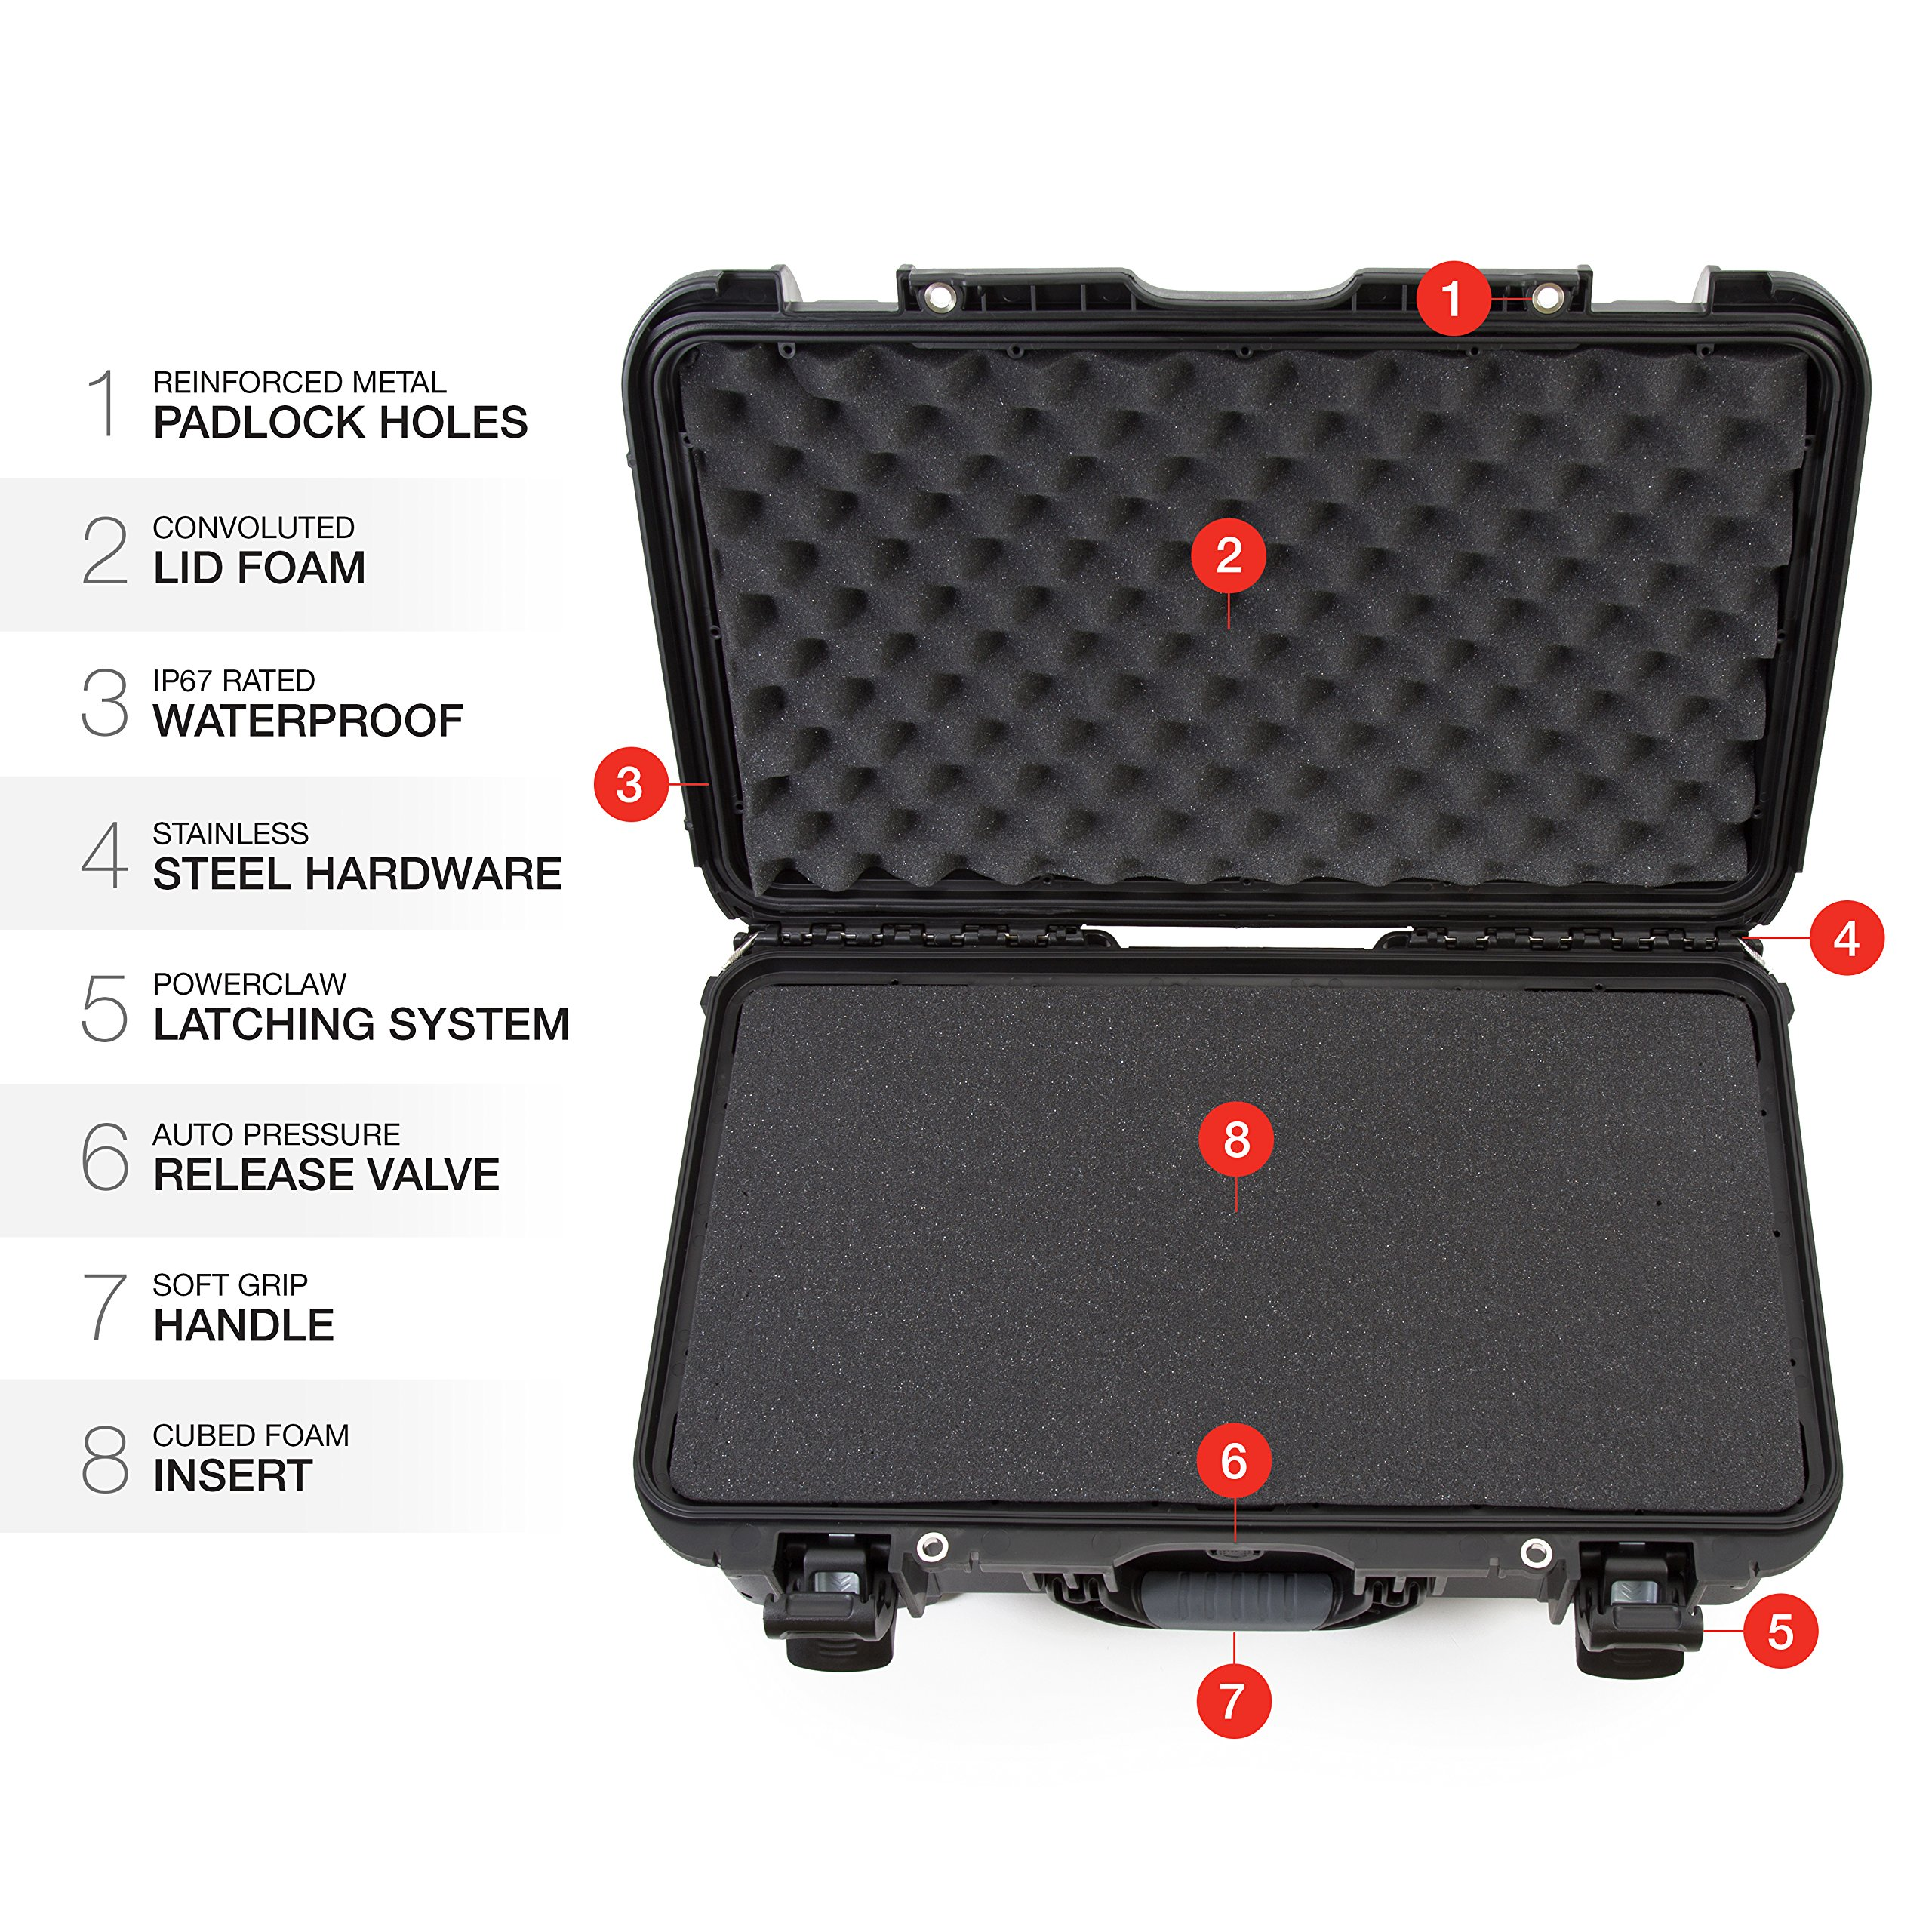 Nanuk 935 Waterproof Carry-On Hard Case with Wheels and Foam Insert - Black by Nanuk (Image #9)